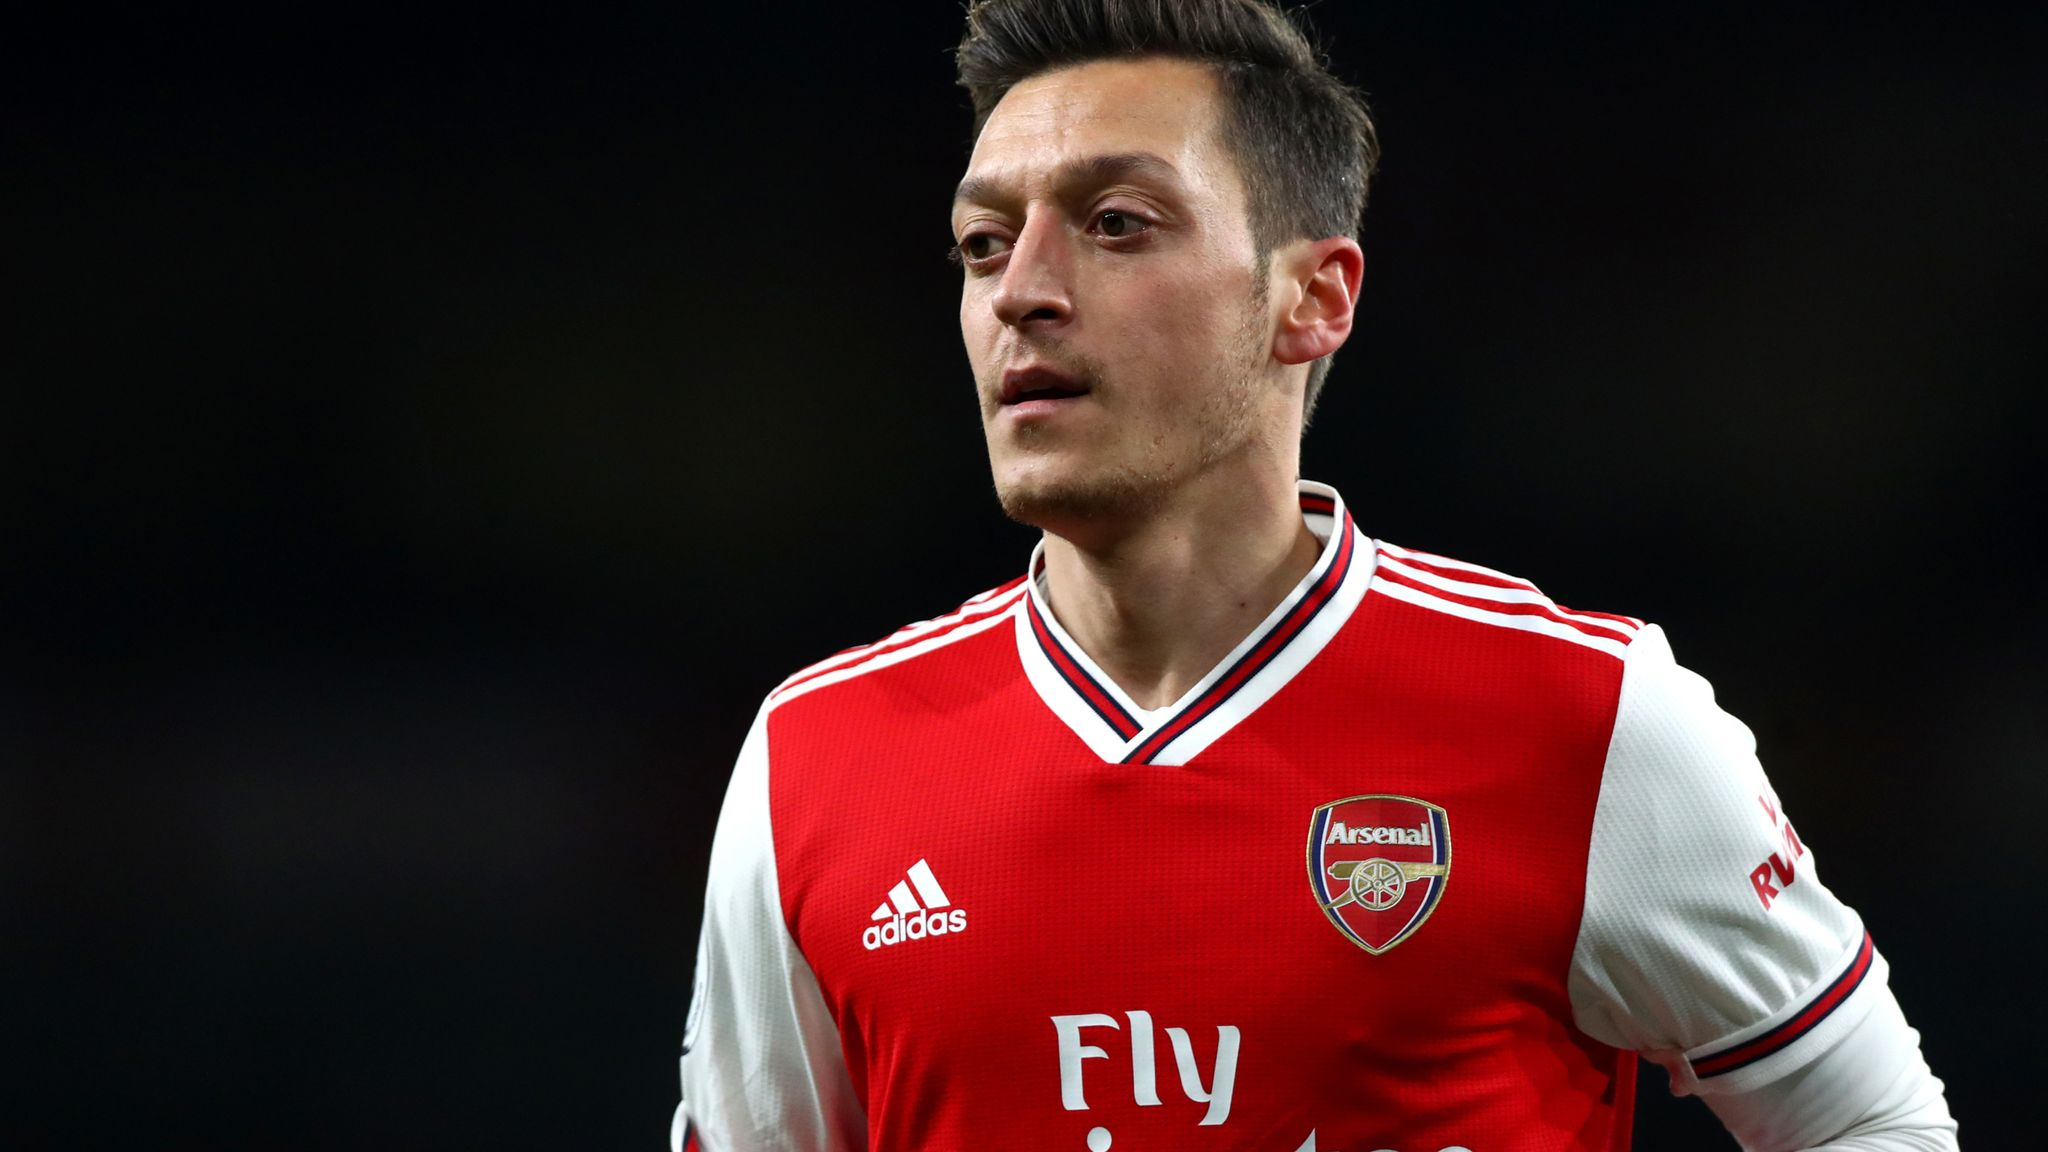 Arsenal distances itself from Mesut Ozil post criticising China's ...